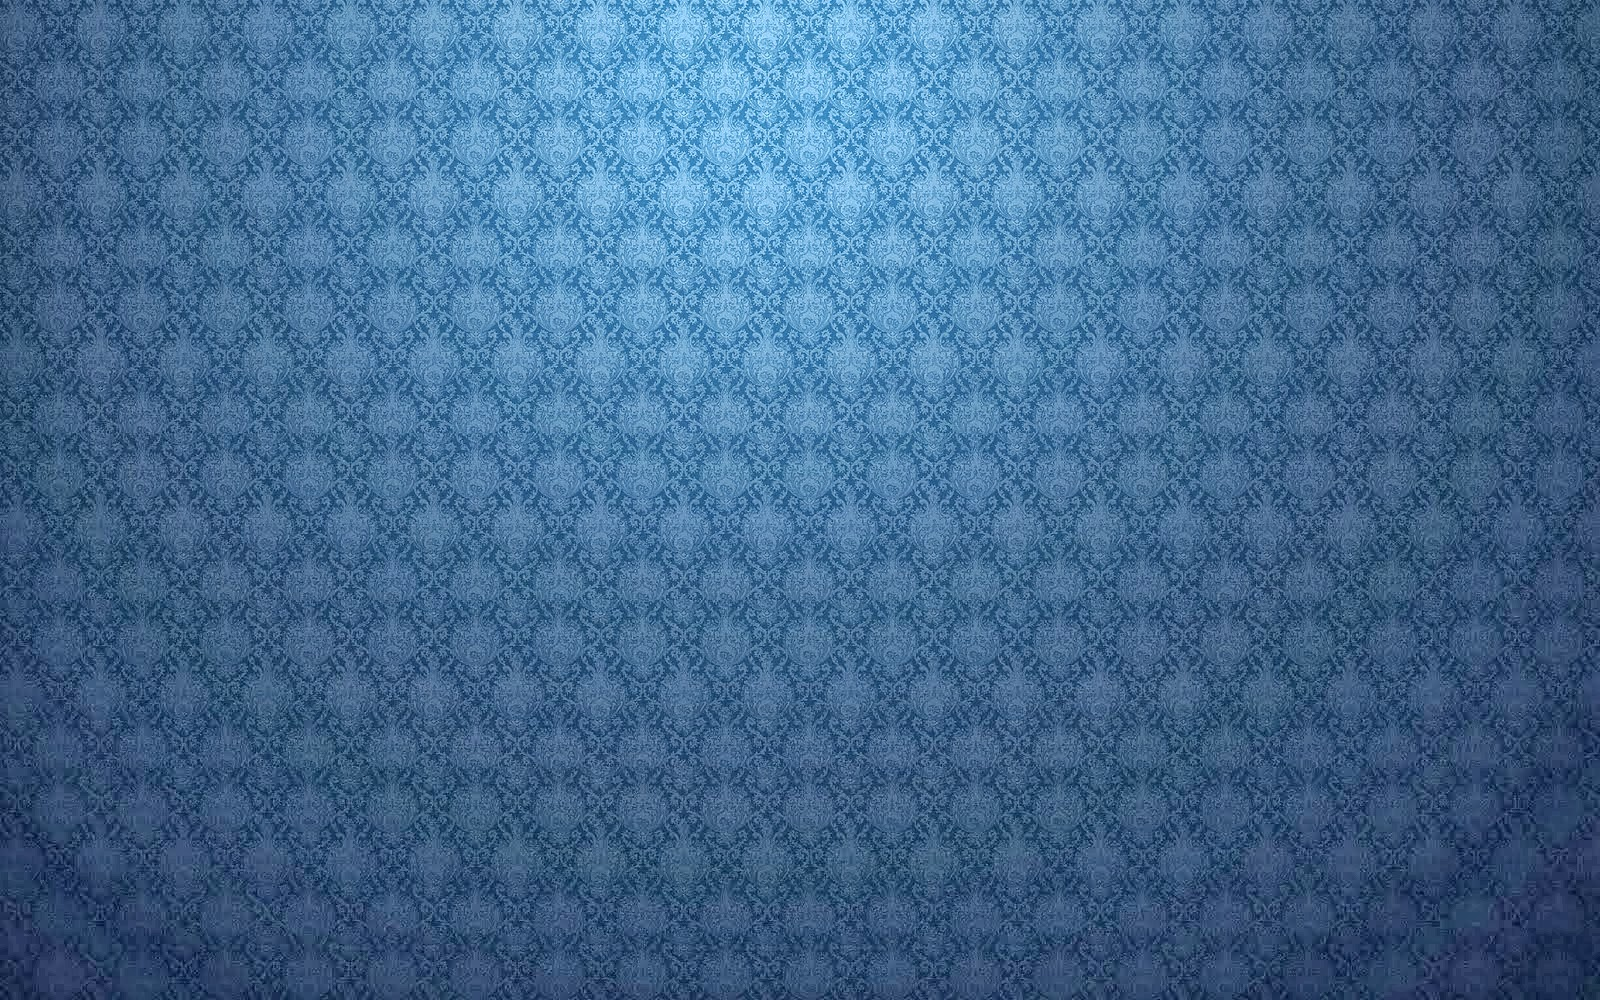 Pattern hd wallpapers full hd wall pictures for Popular wallpaper patterns